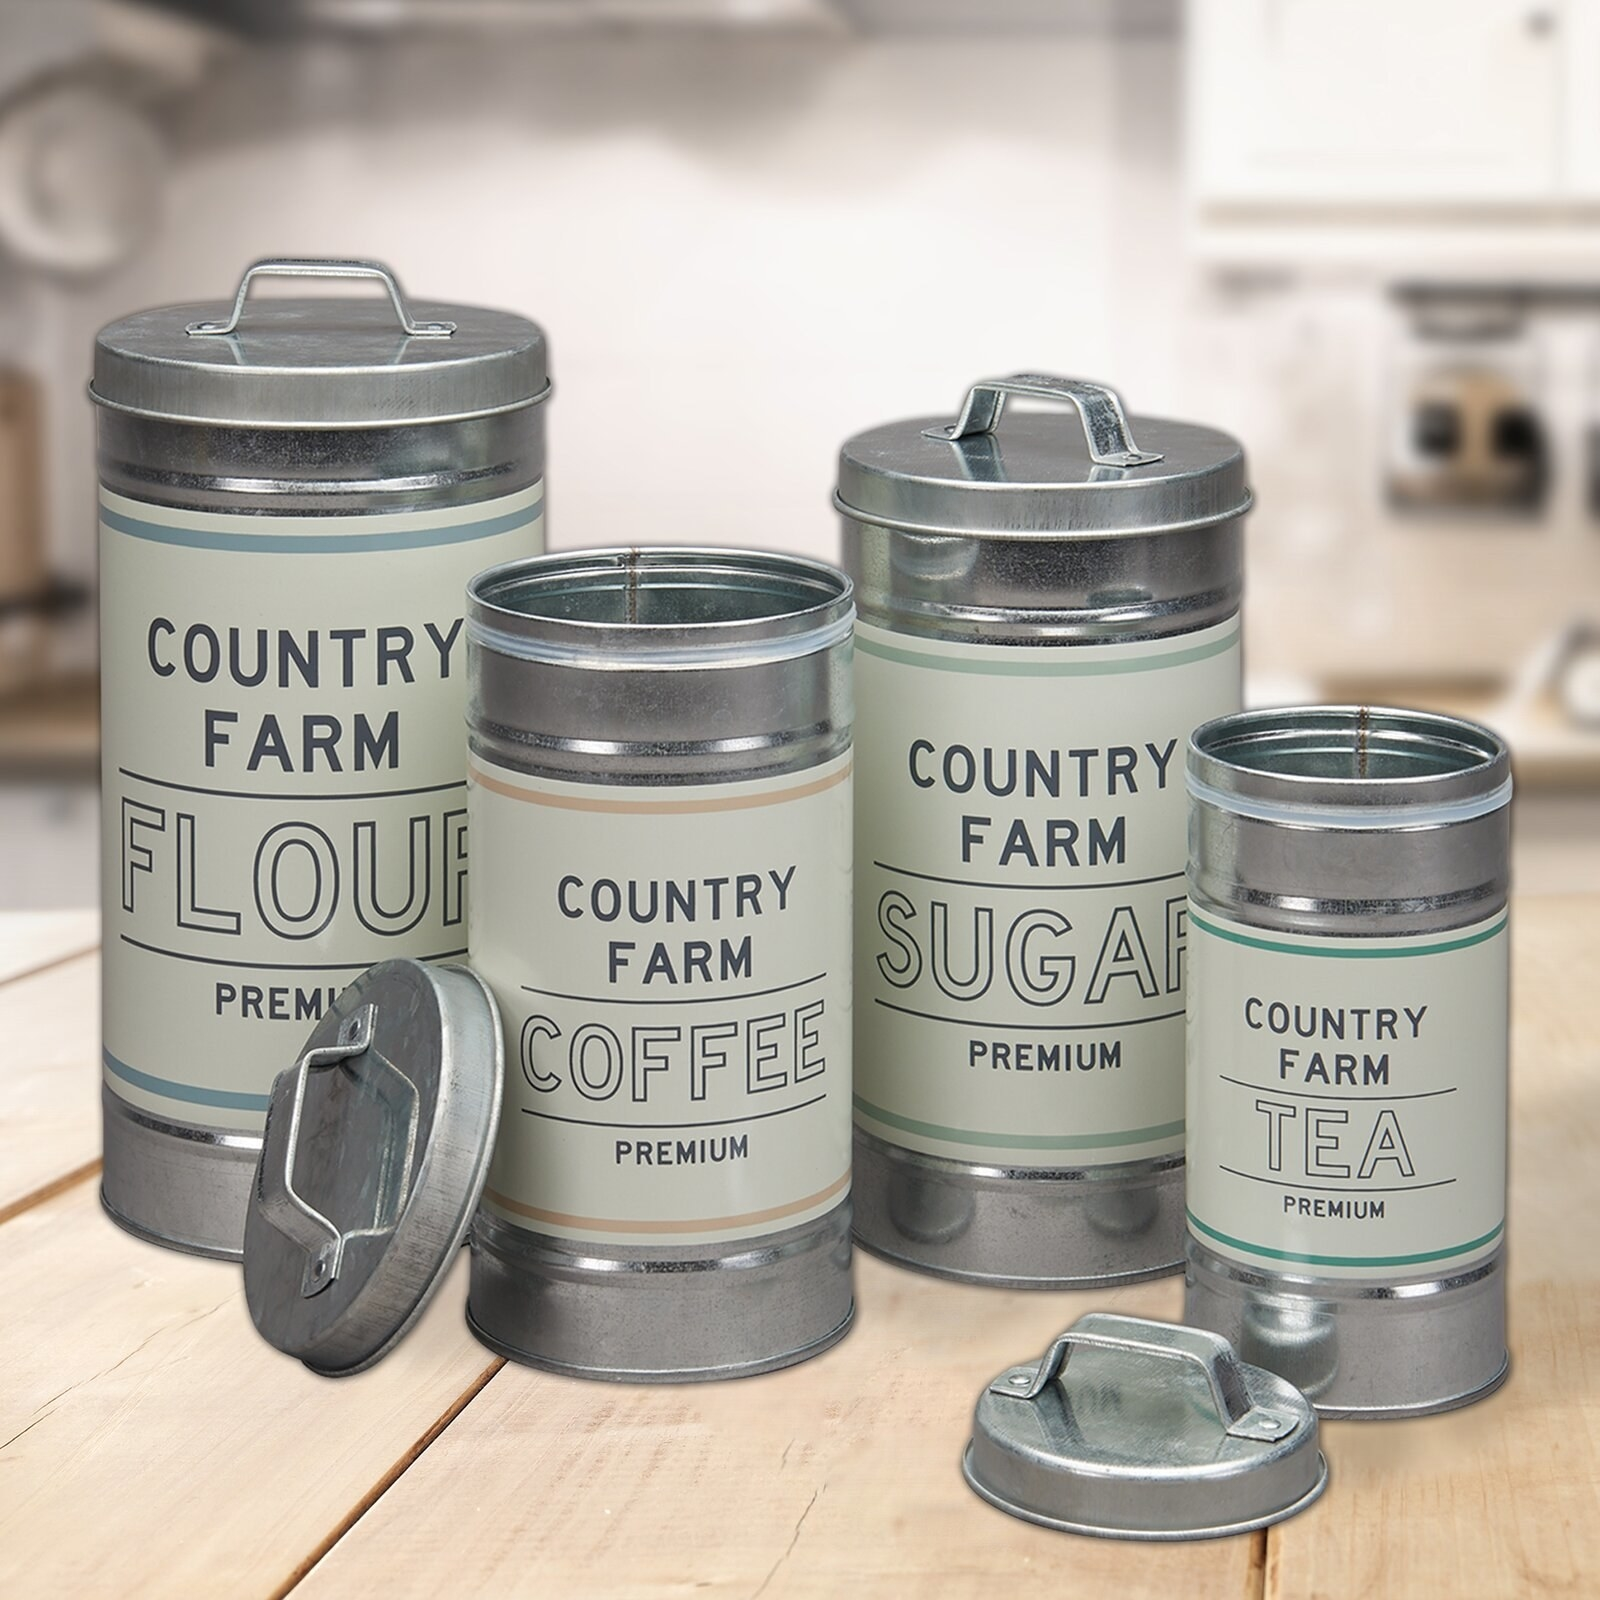 The four-piece set of canisters